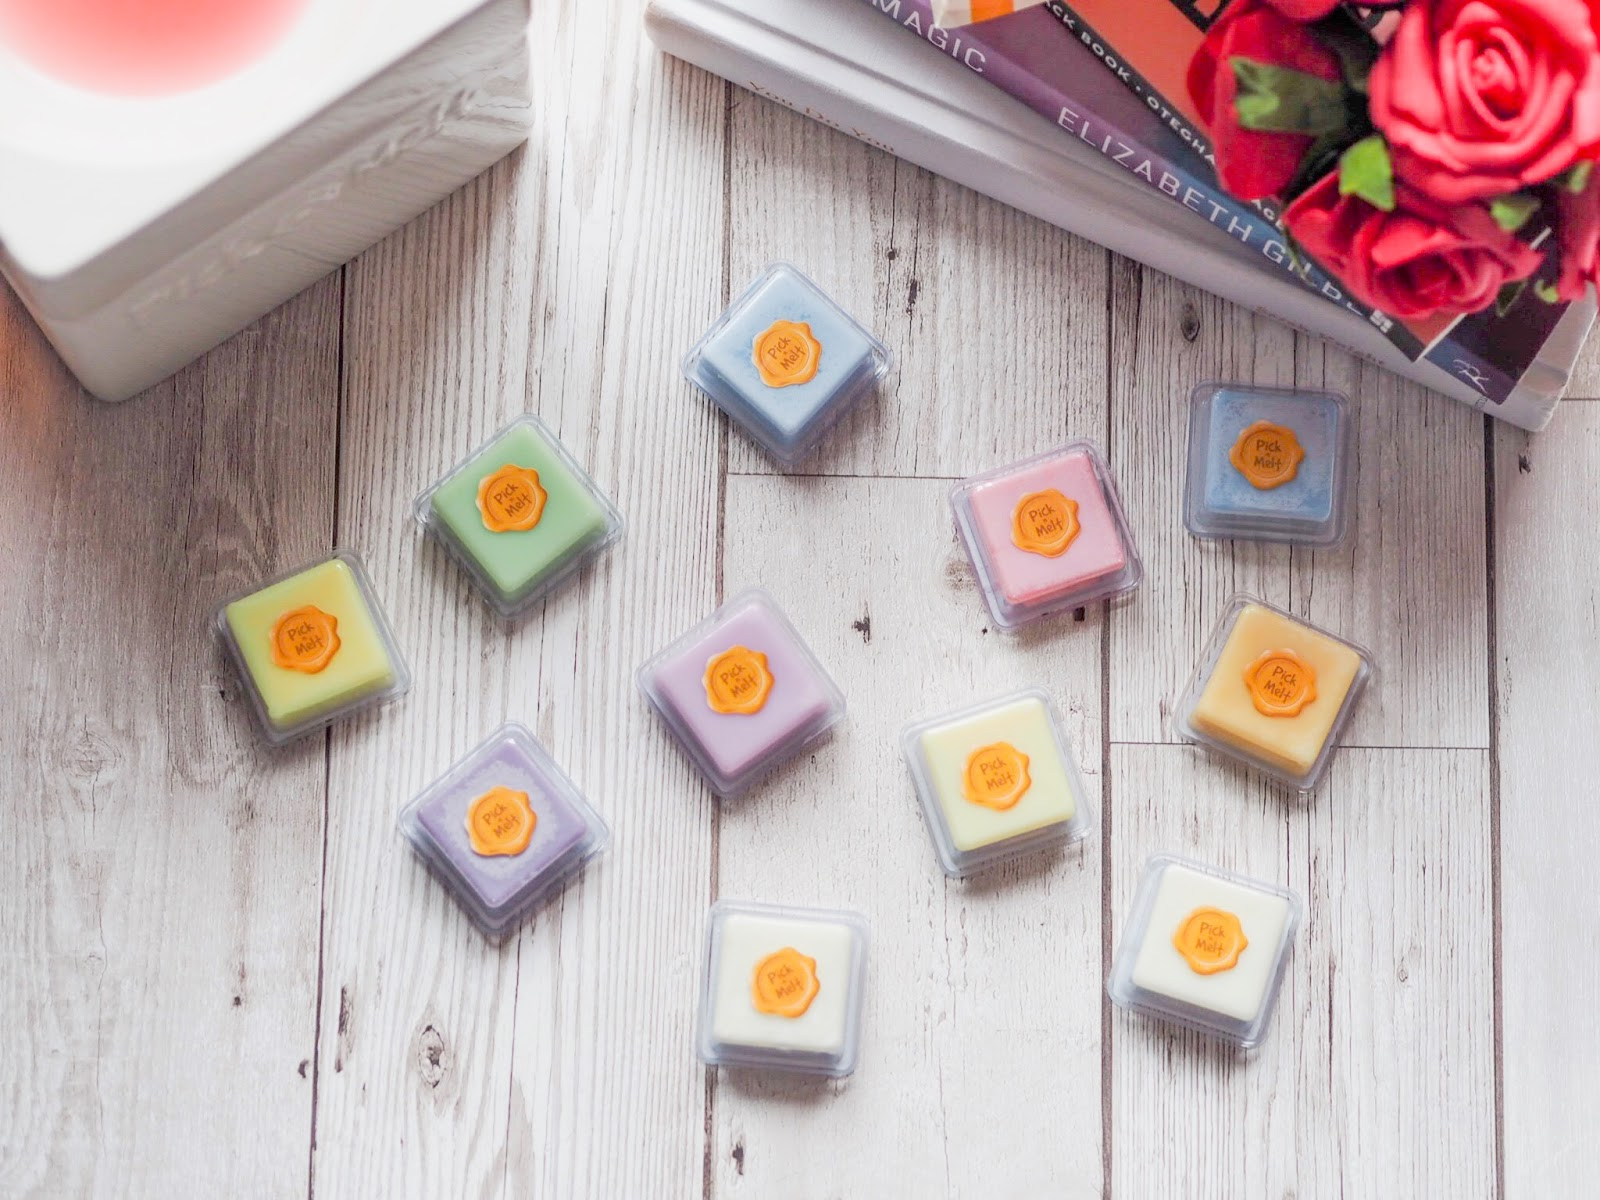 Pick'n'melt Spring awakening wax melts flat lay